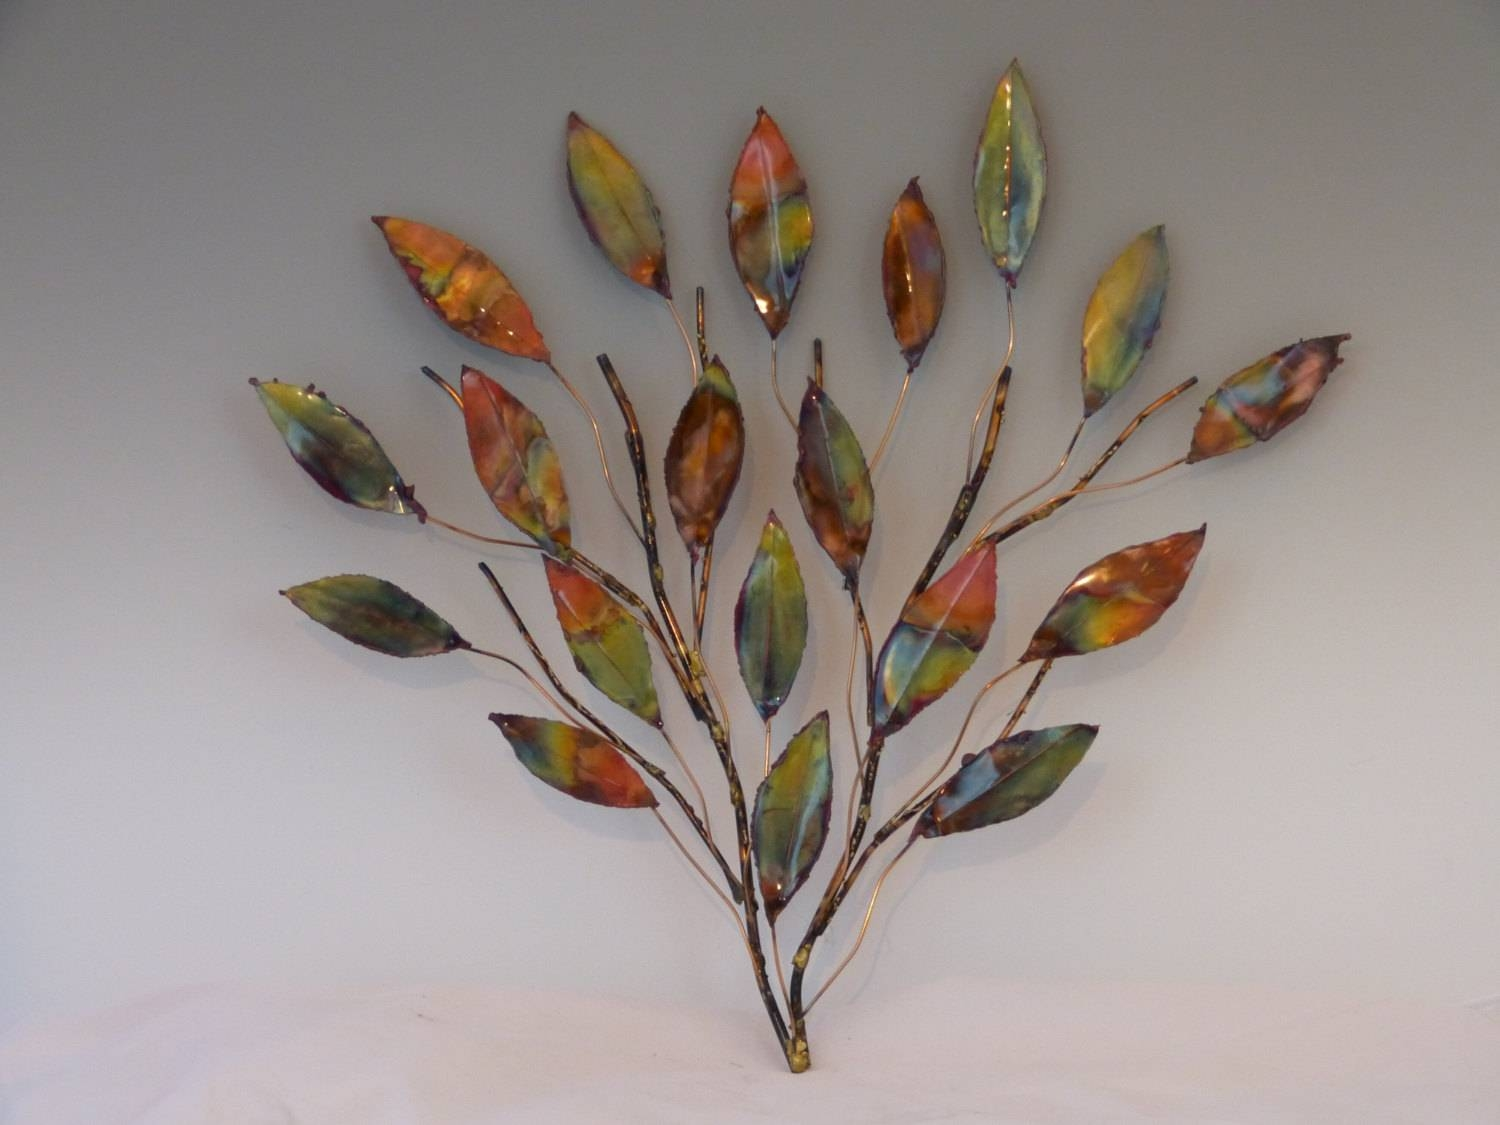 Copper Branch Sculpture: Metal Sculpture Home Decor Wall Art Inside Most Recent Leaf Metal Wall Art (View 17 of 20)